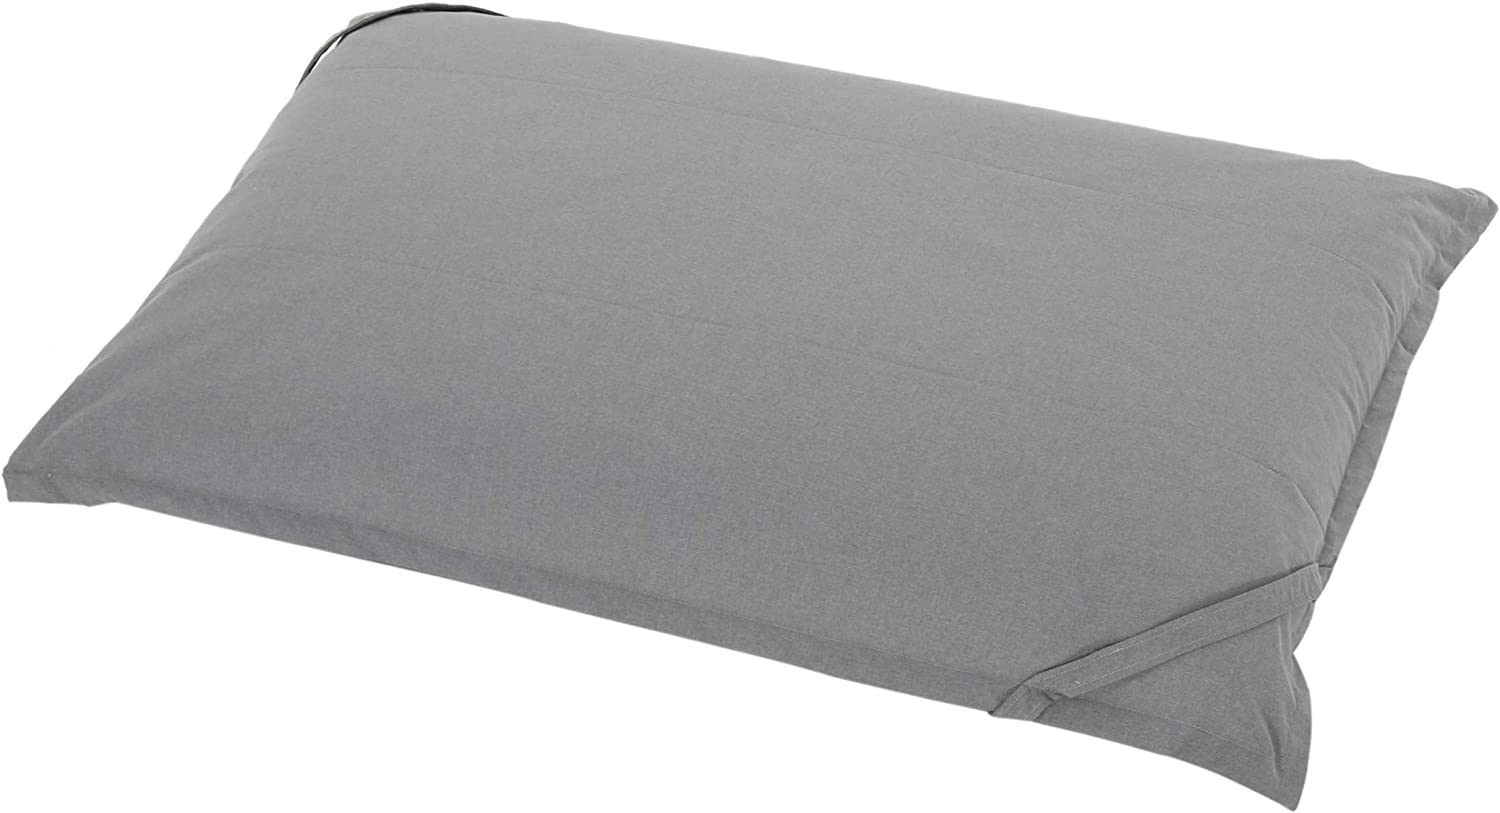 Christopher Knight Home Renata Indoor Water Resistant 5.5'x4' Lounger Bean Bag, Charcoal